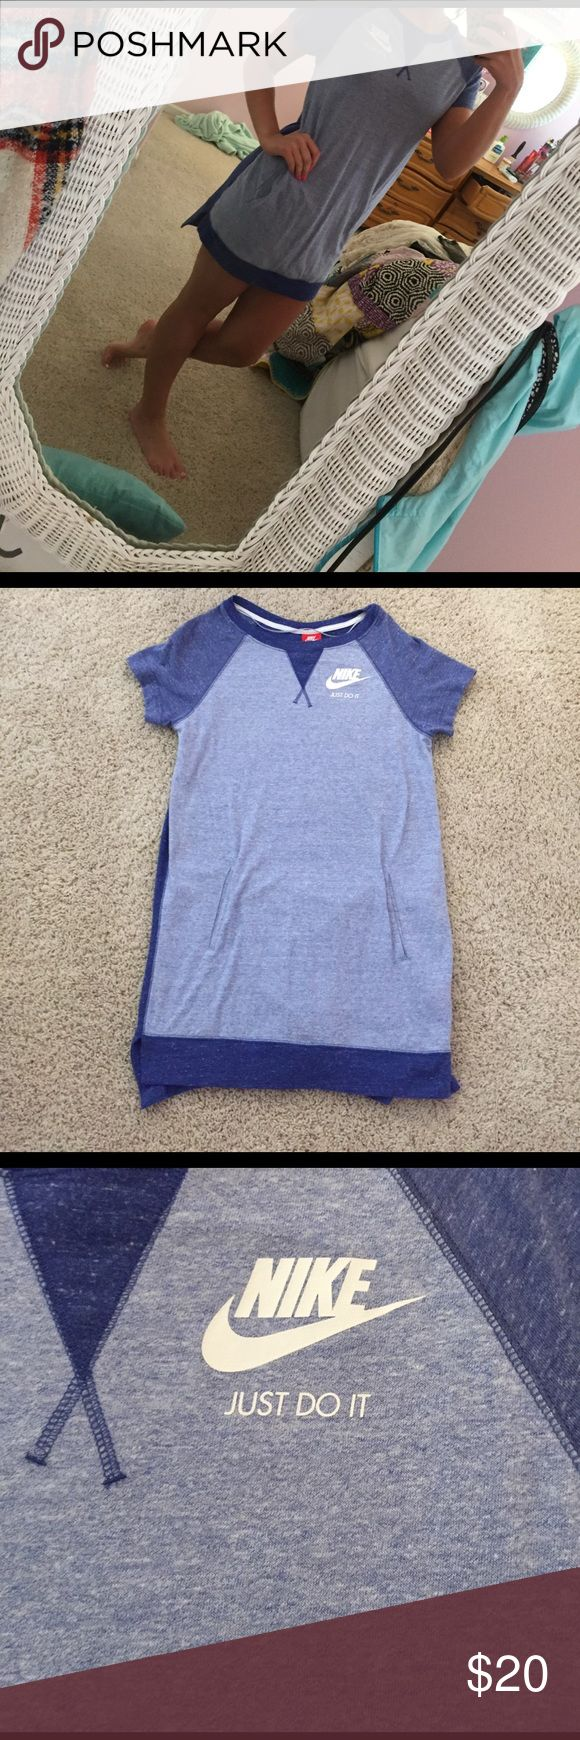 nike dress cute and casual nike dress! size small. perfect condition - worn only a couple times! has pocket! (picture 5) 5) **can get both of the nike dress listings for $40** Nike Dresses